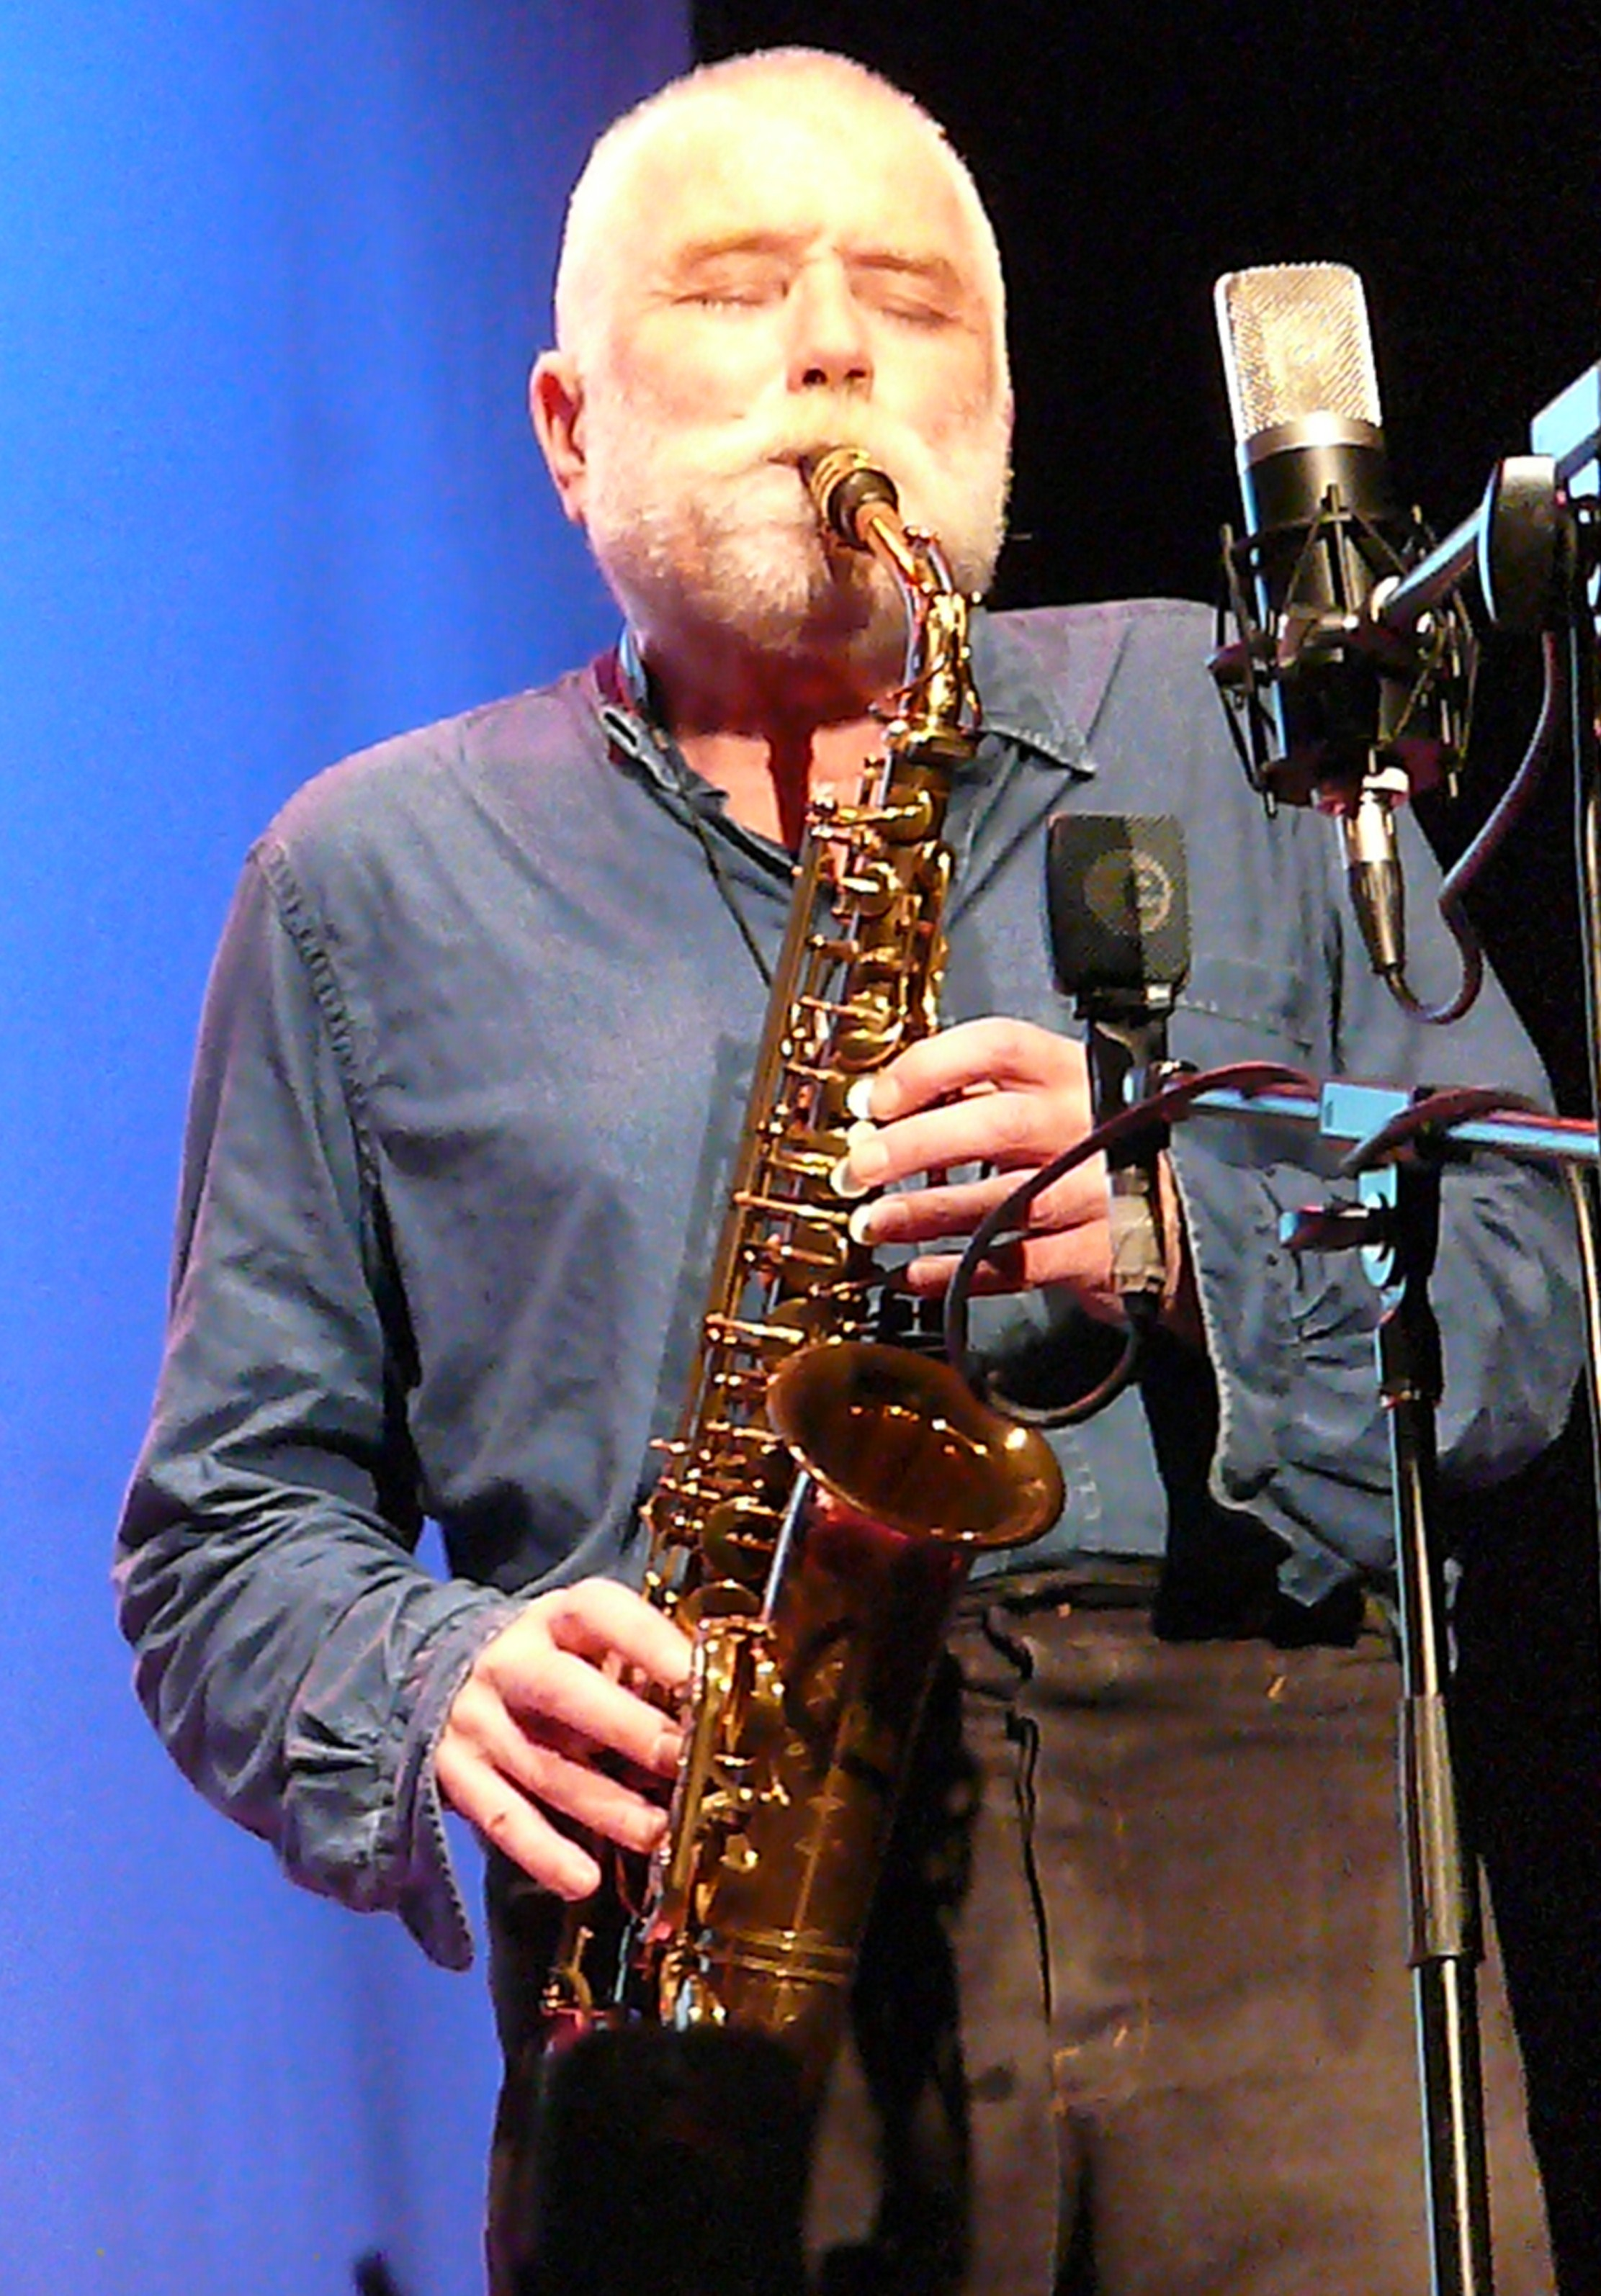 Peter Brotzmann at Vision Festival 2011